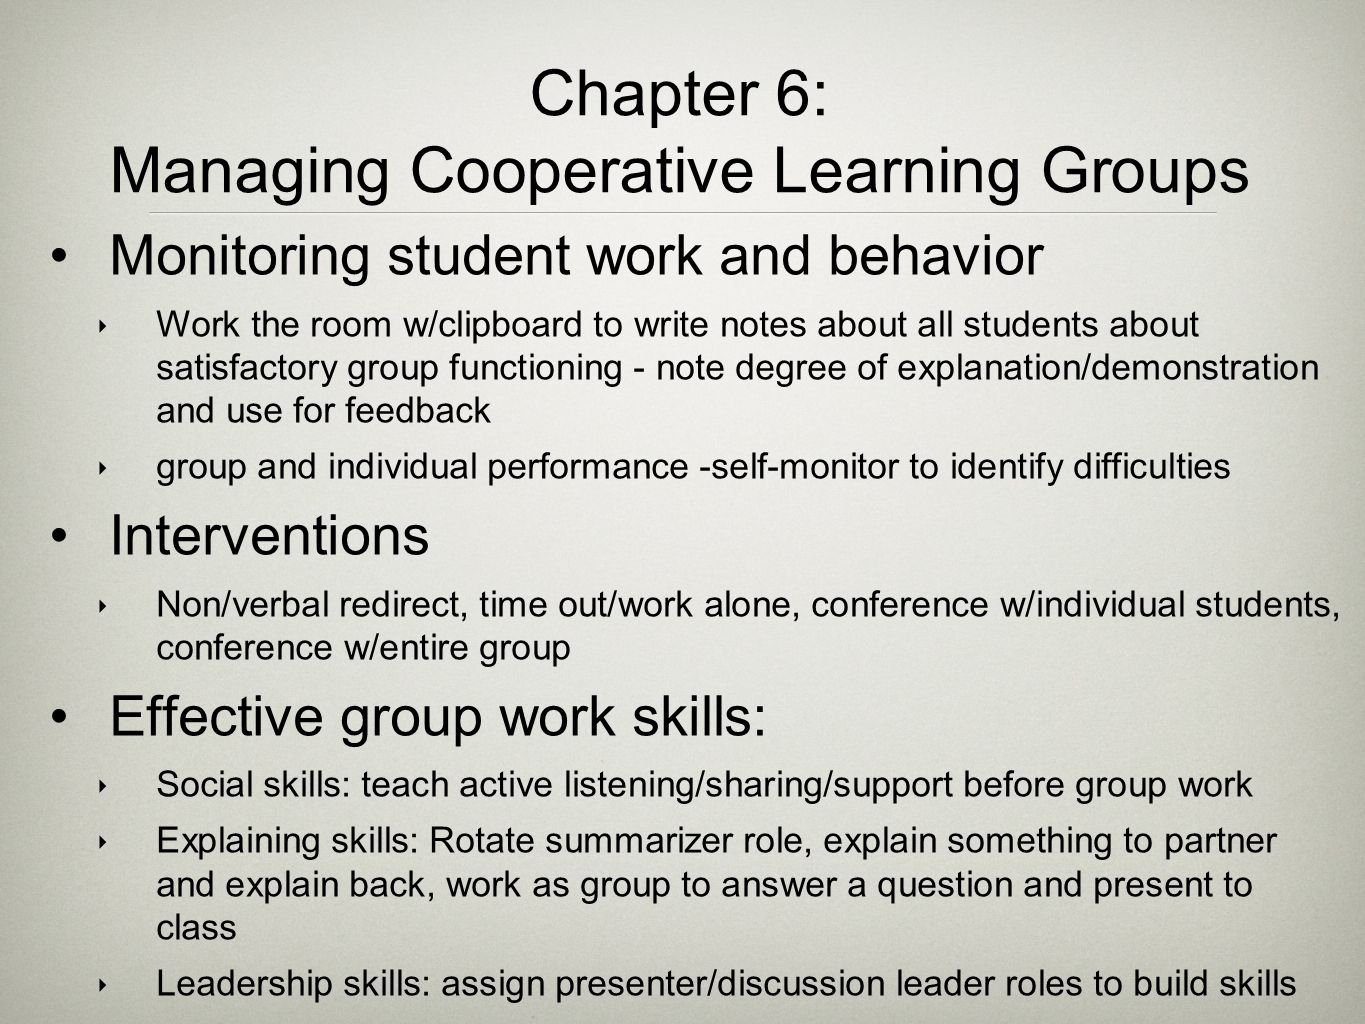 Managing Cooperative Learning Groups